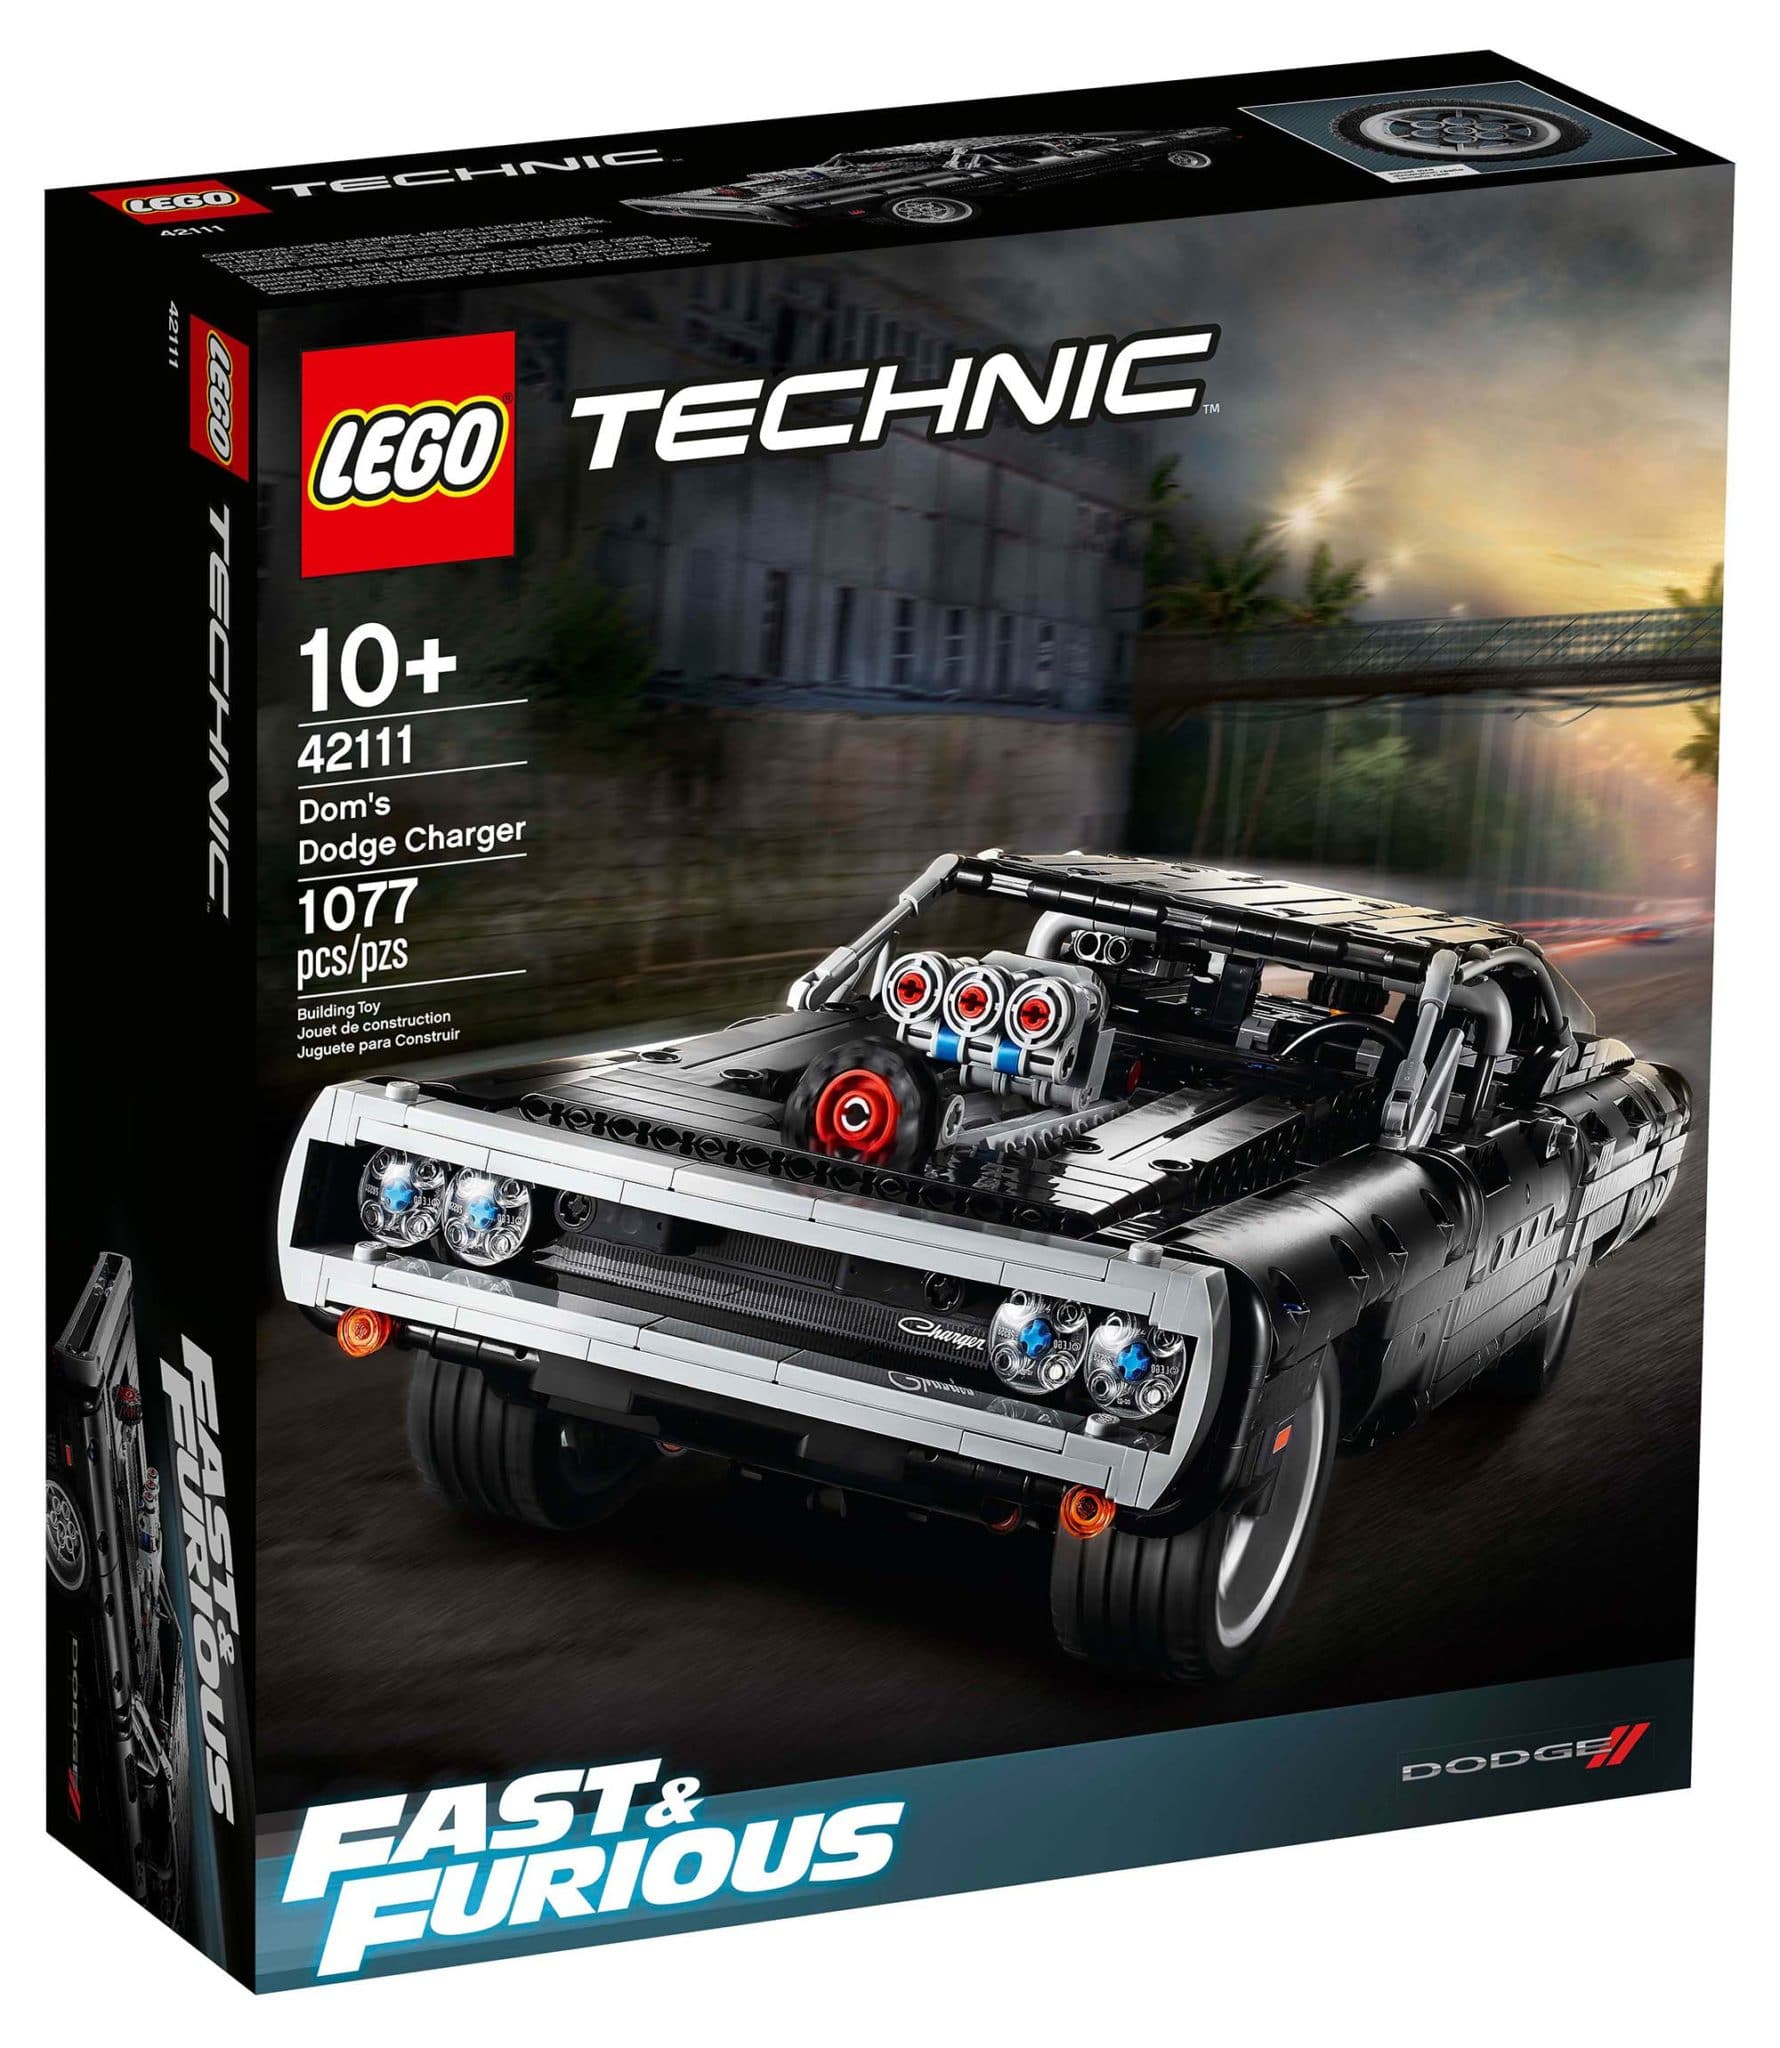 LEGO Technic 42111 Dom's Dodge Charger Box vorne